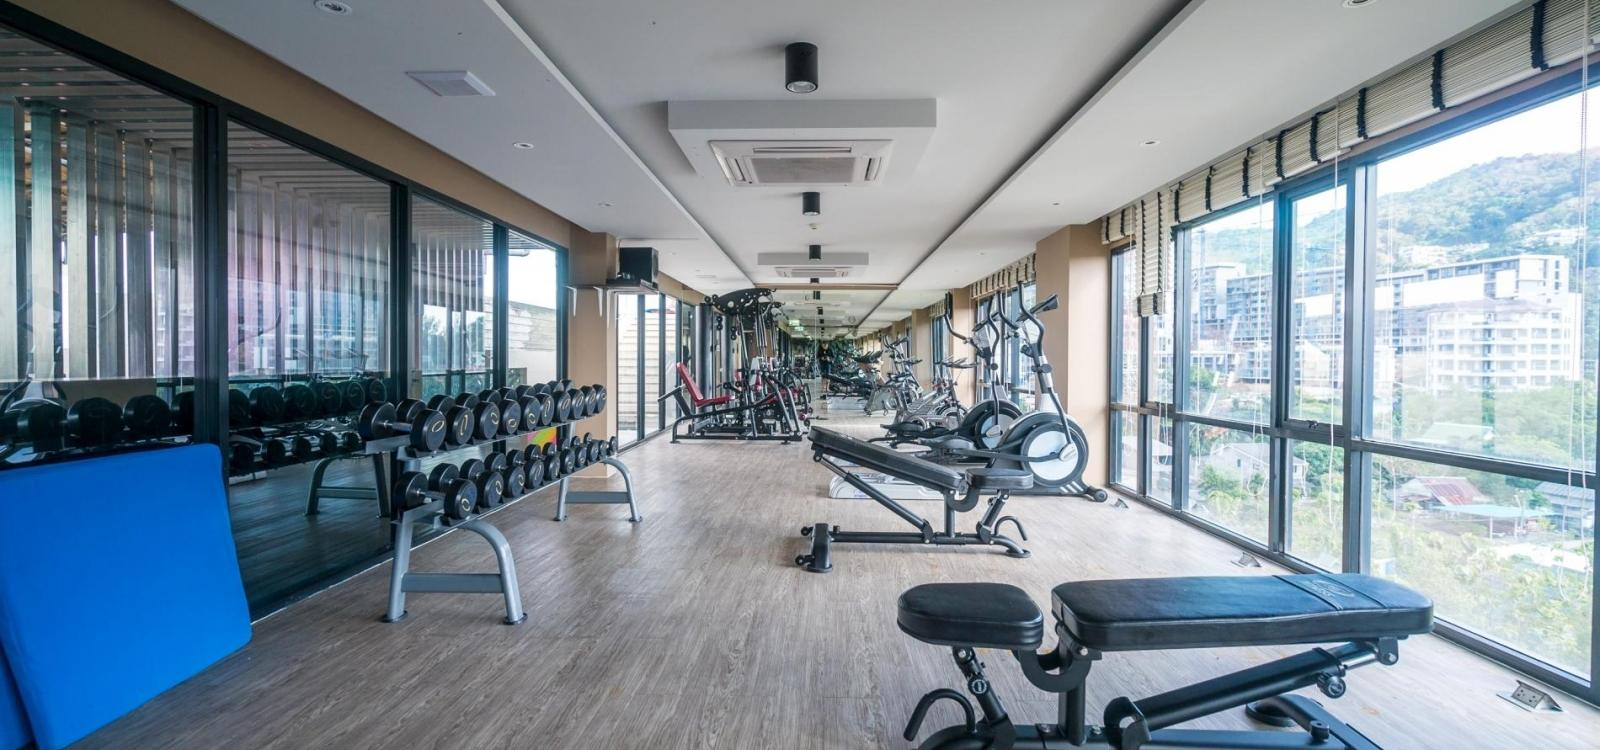 Aristo 522 - Brand new studio near beach, 3 pools, gym.